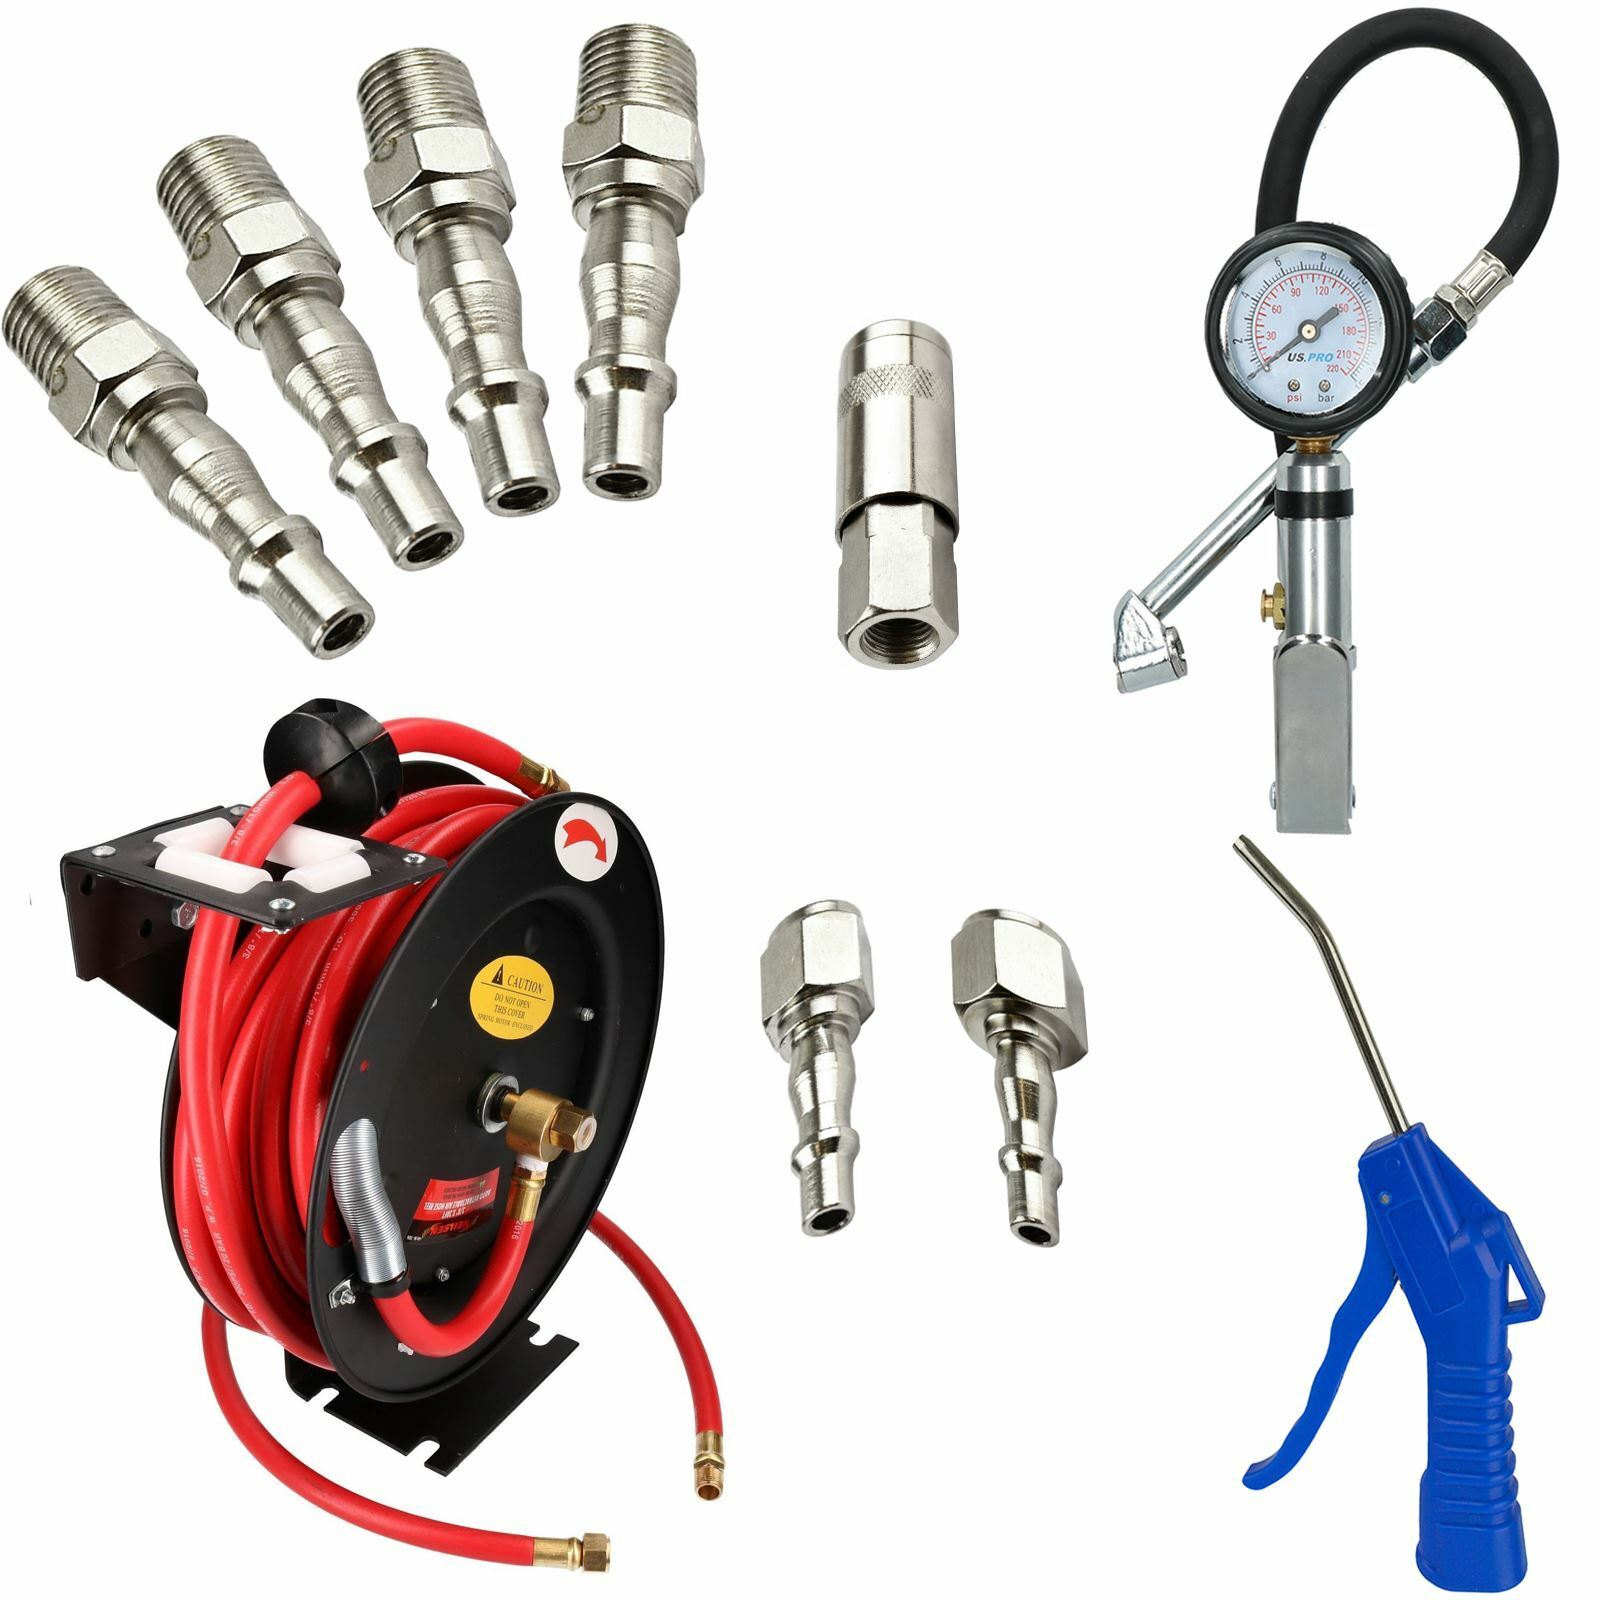 3 8  BSP Retractable Air Hose Kit With Fittings   Tyre Inflator   Blow Dust Gun